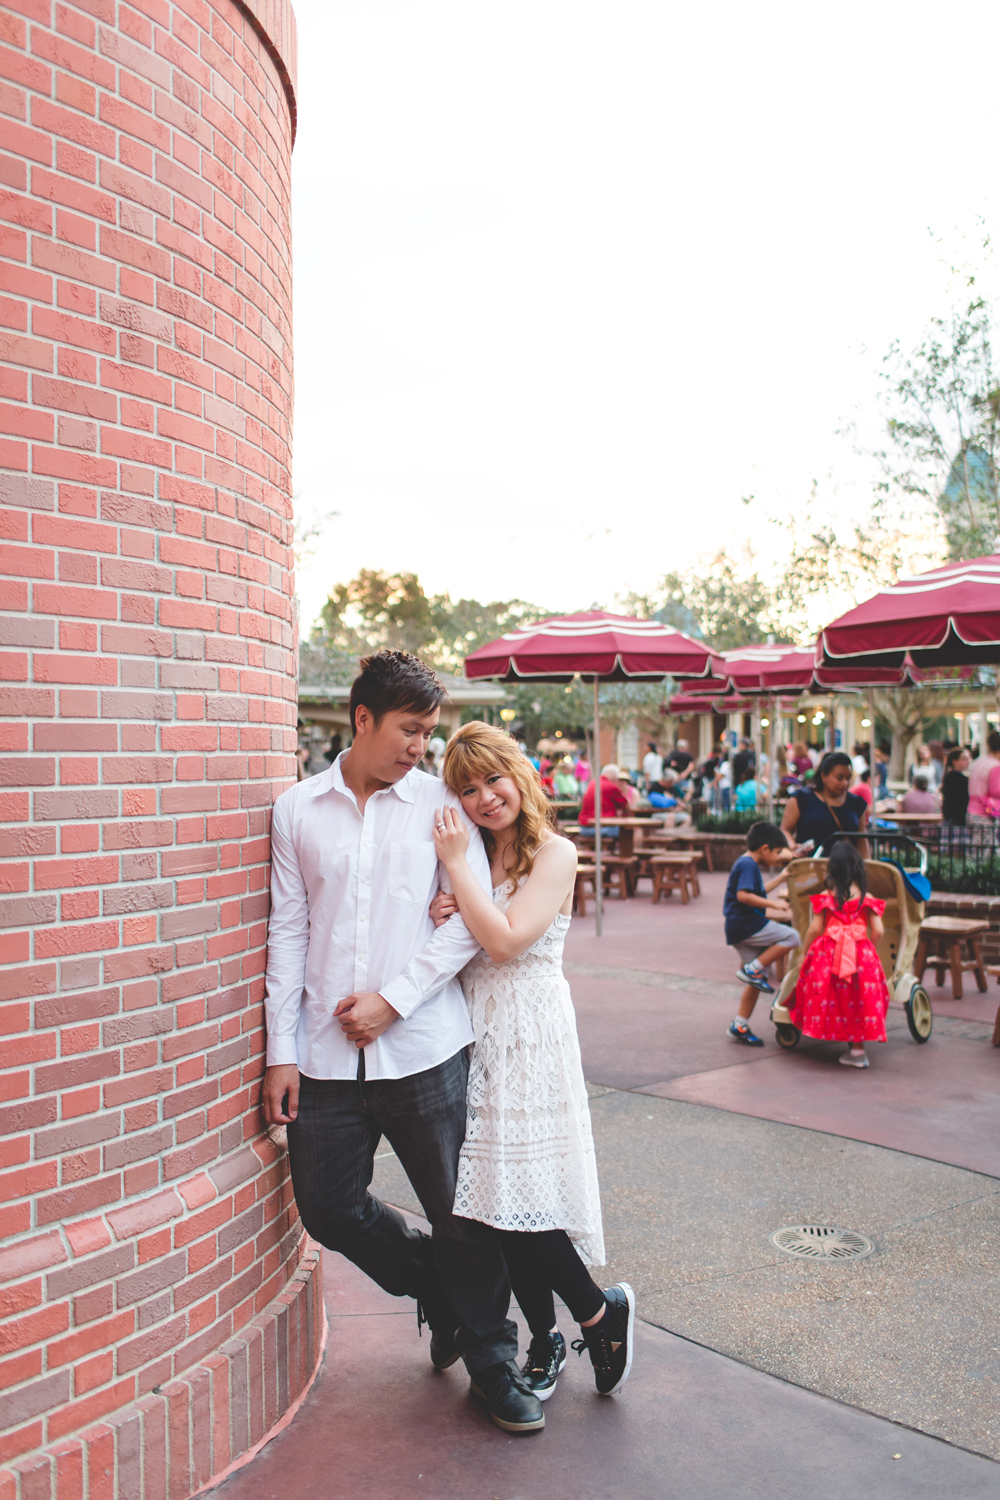 Disney Honeymoon session - Disney Engagement Photos - Disney Wedding Photographer - Destination Orlando Wedding Photographer - Jaime DiOrio (69).jpg